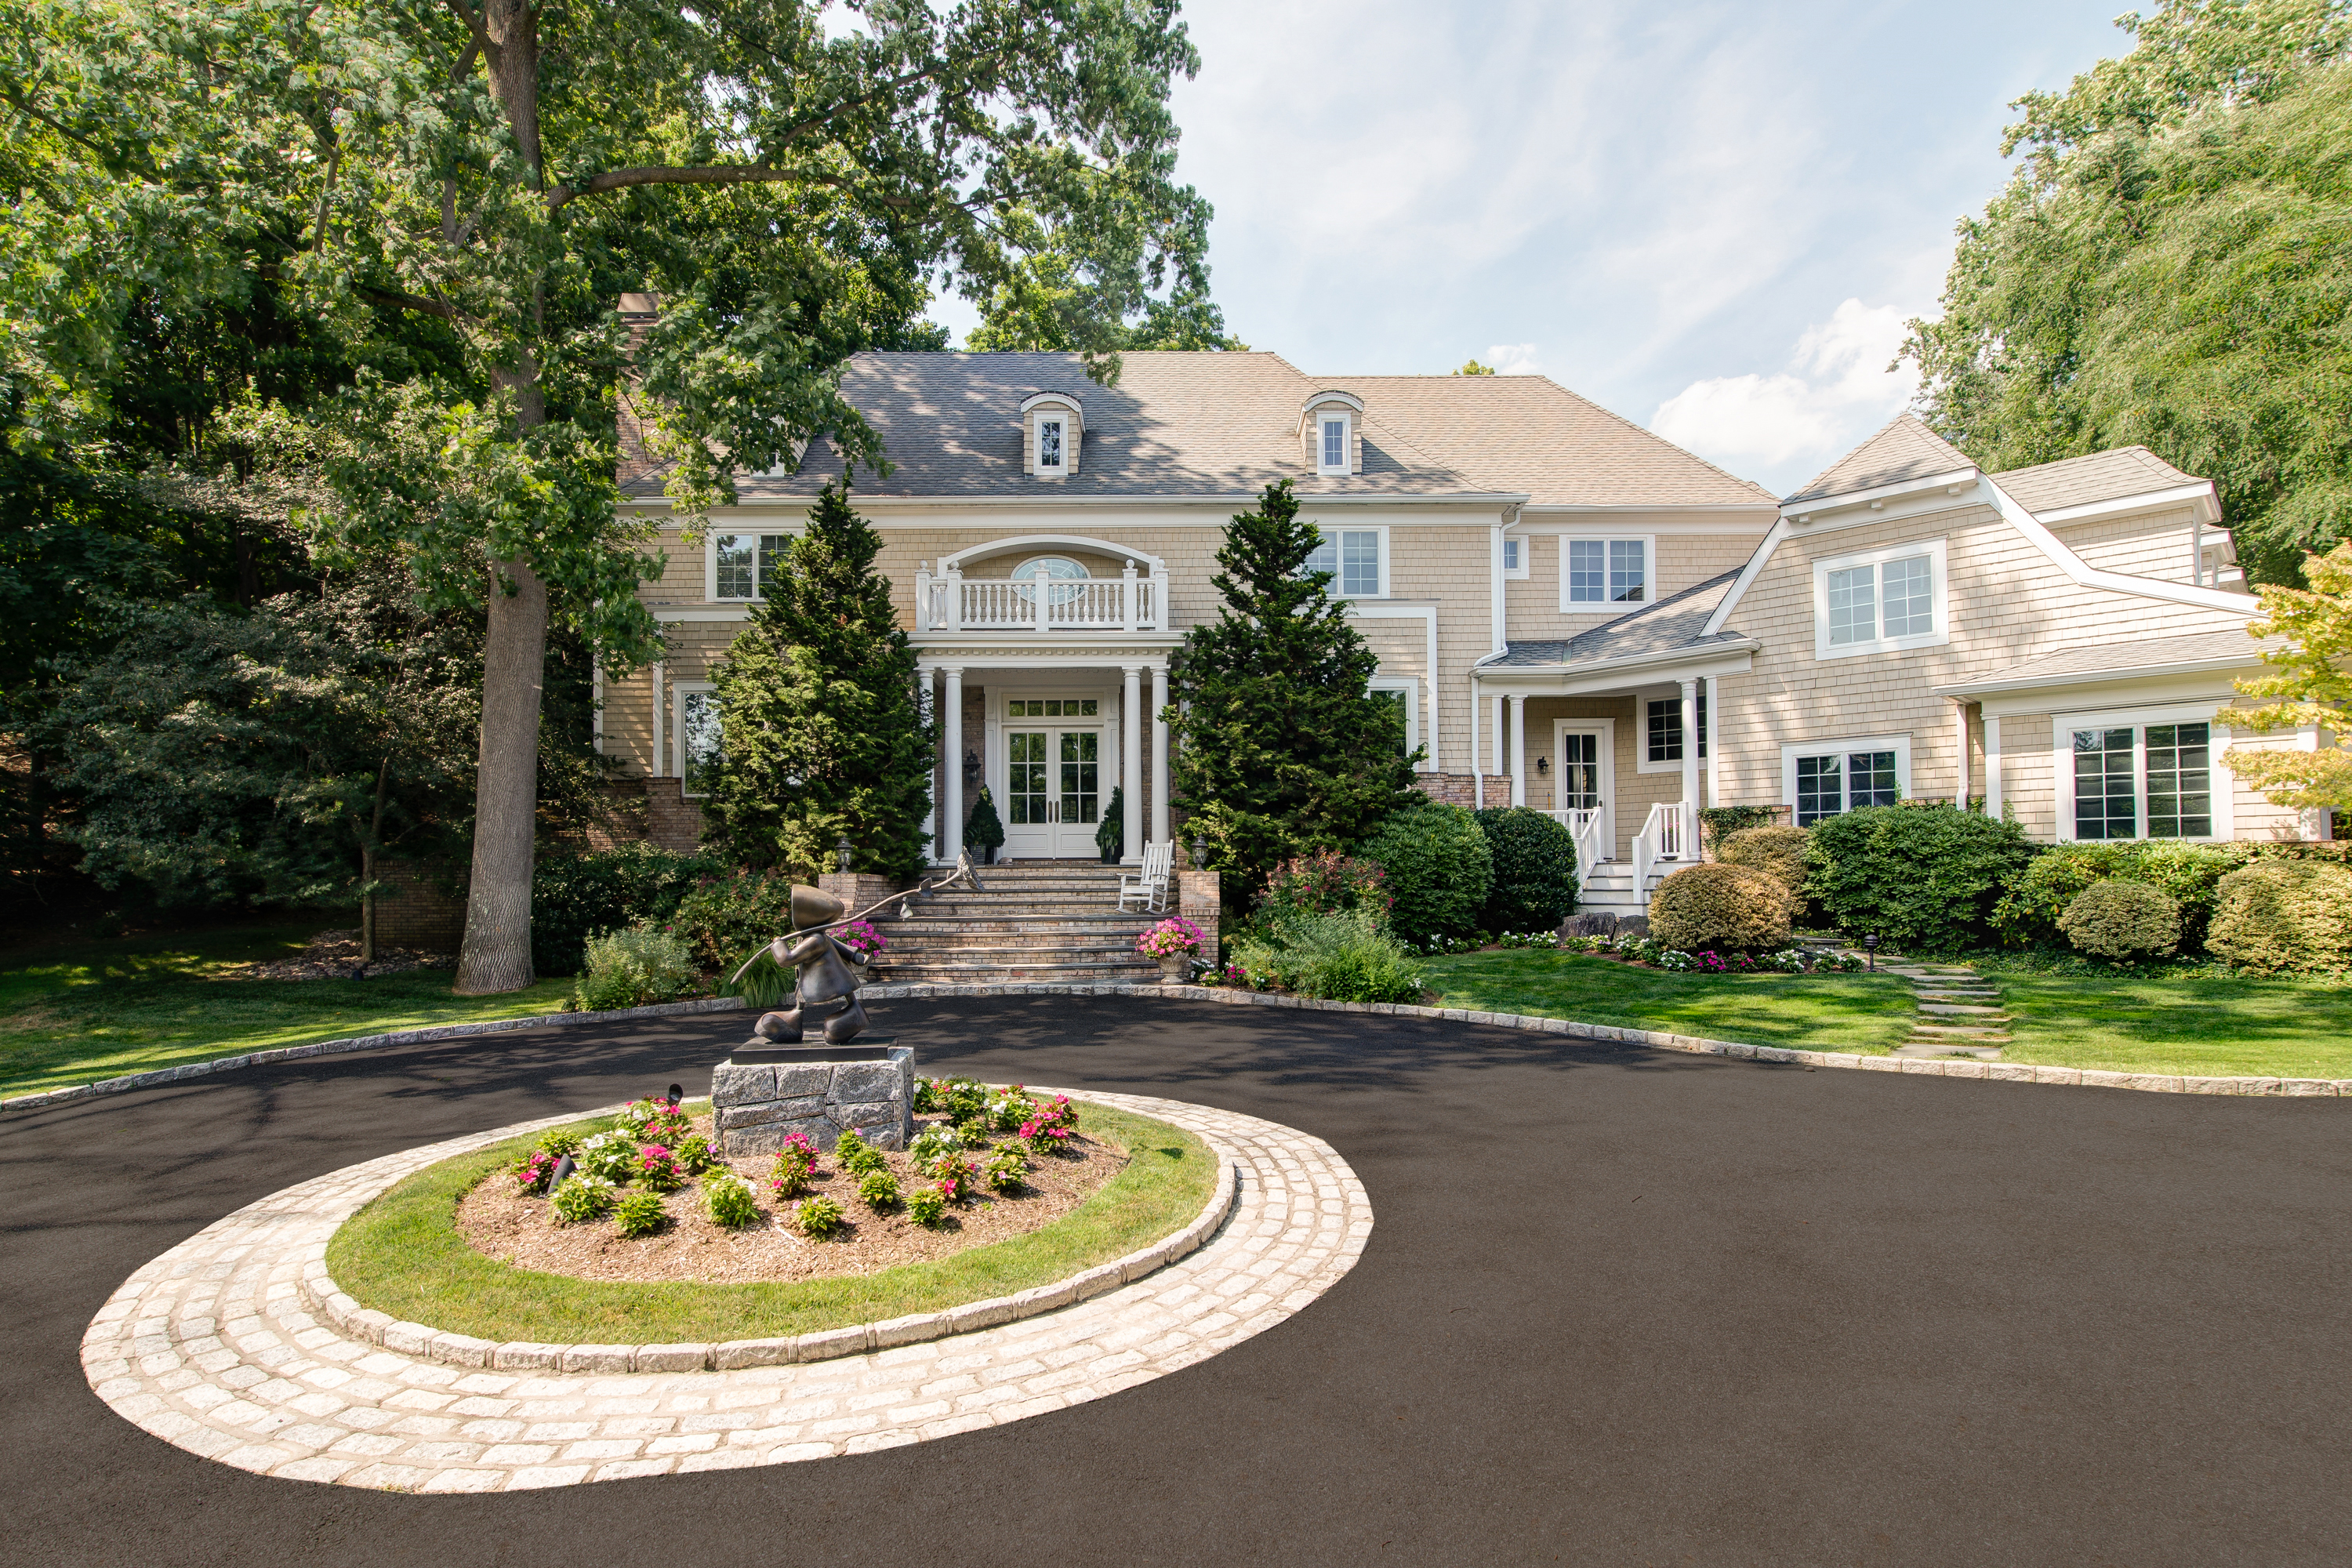 Single Family Home for Sale at 8 Puritan Woods Road Rye, New York, 10580 United States